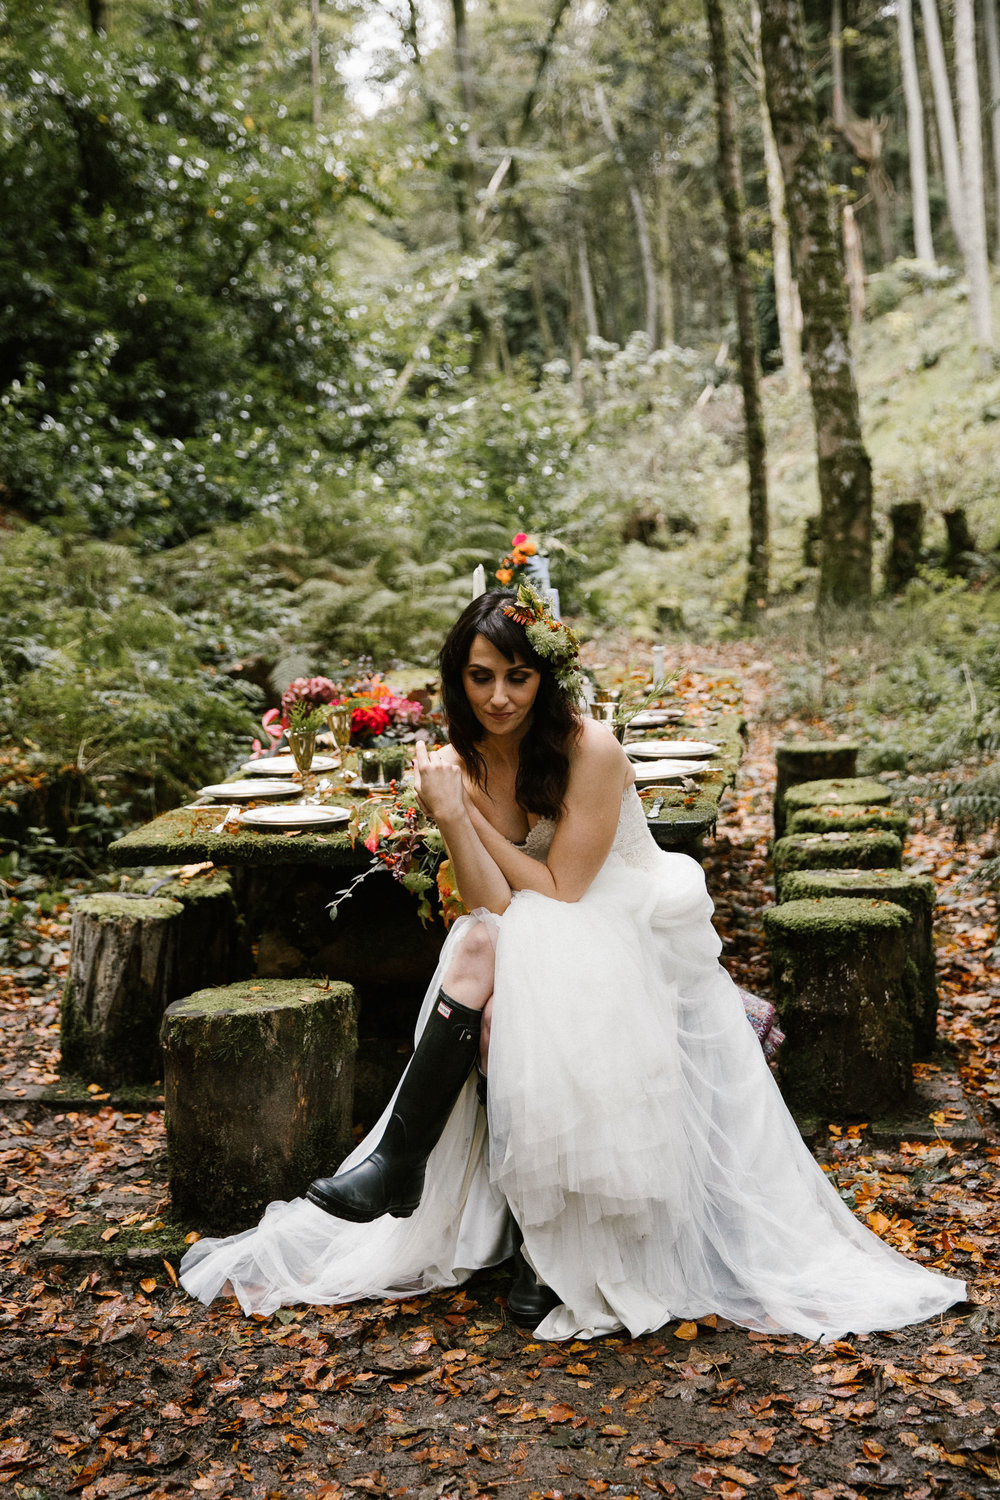 clairebyrnephotography-styled-shoot-huntingbrook-gardens-inspiration-weddings-woods-forest-43.jpg